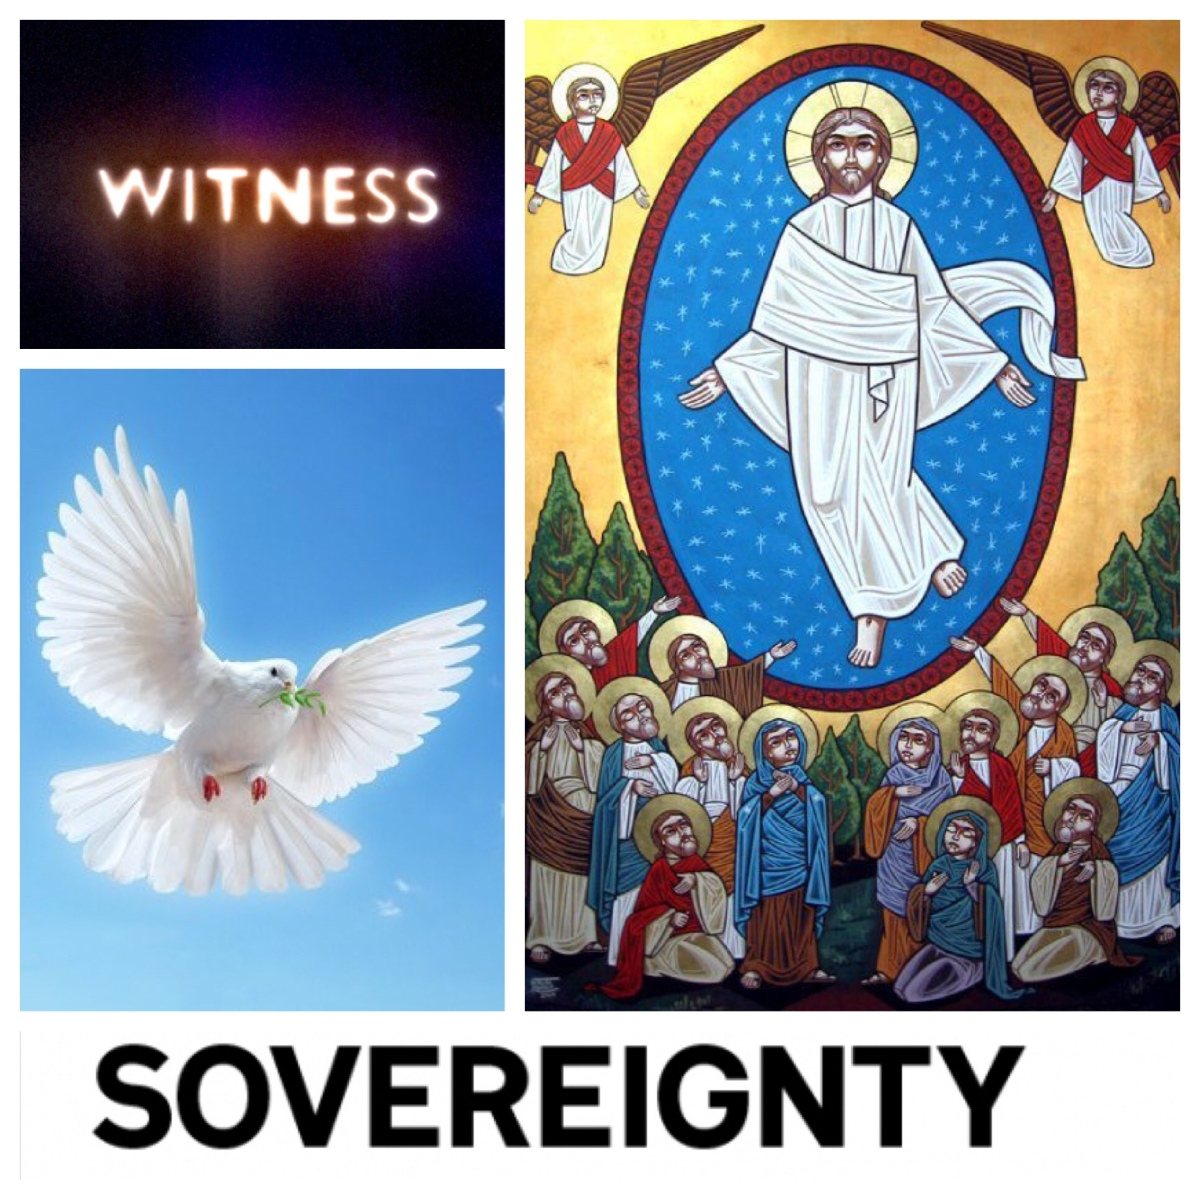 Is this the time? Sovereignty, Spirit, and witness (Acts 1)